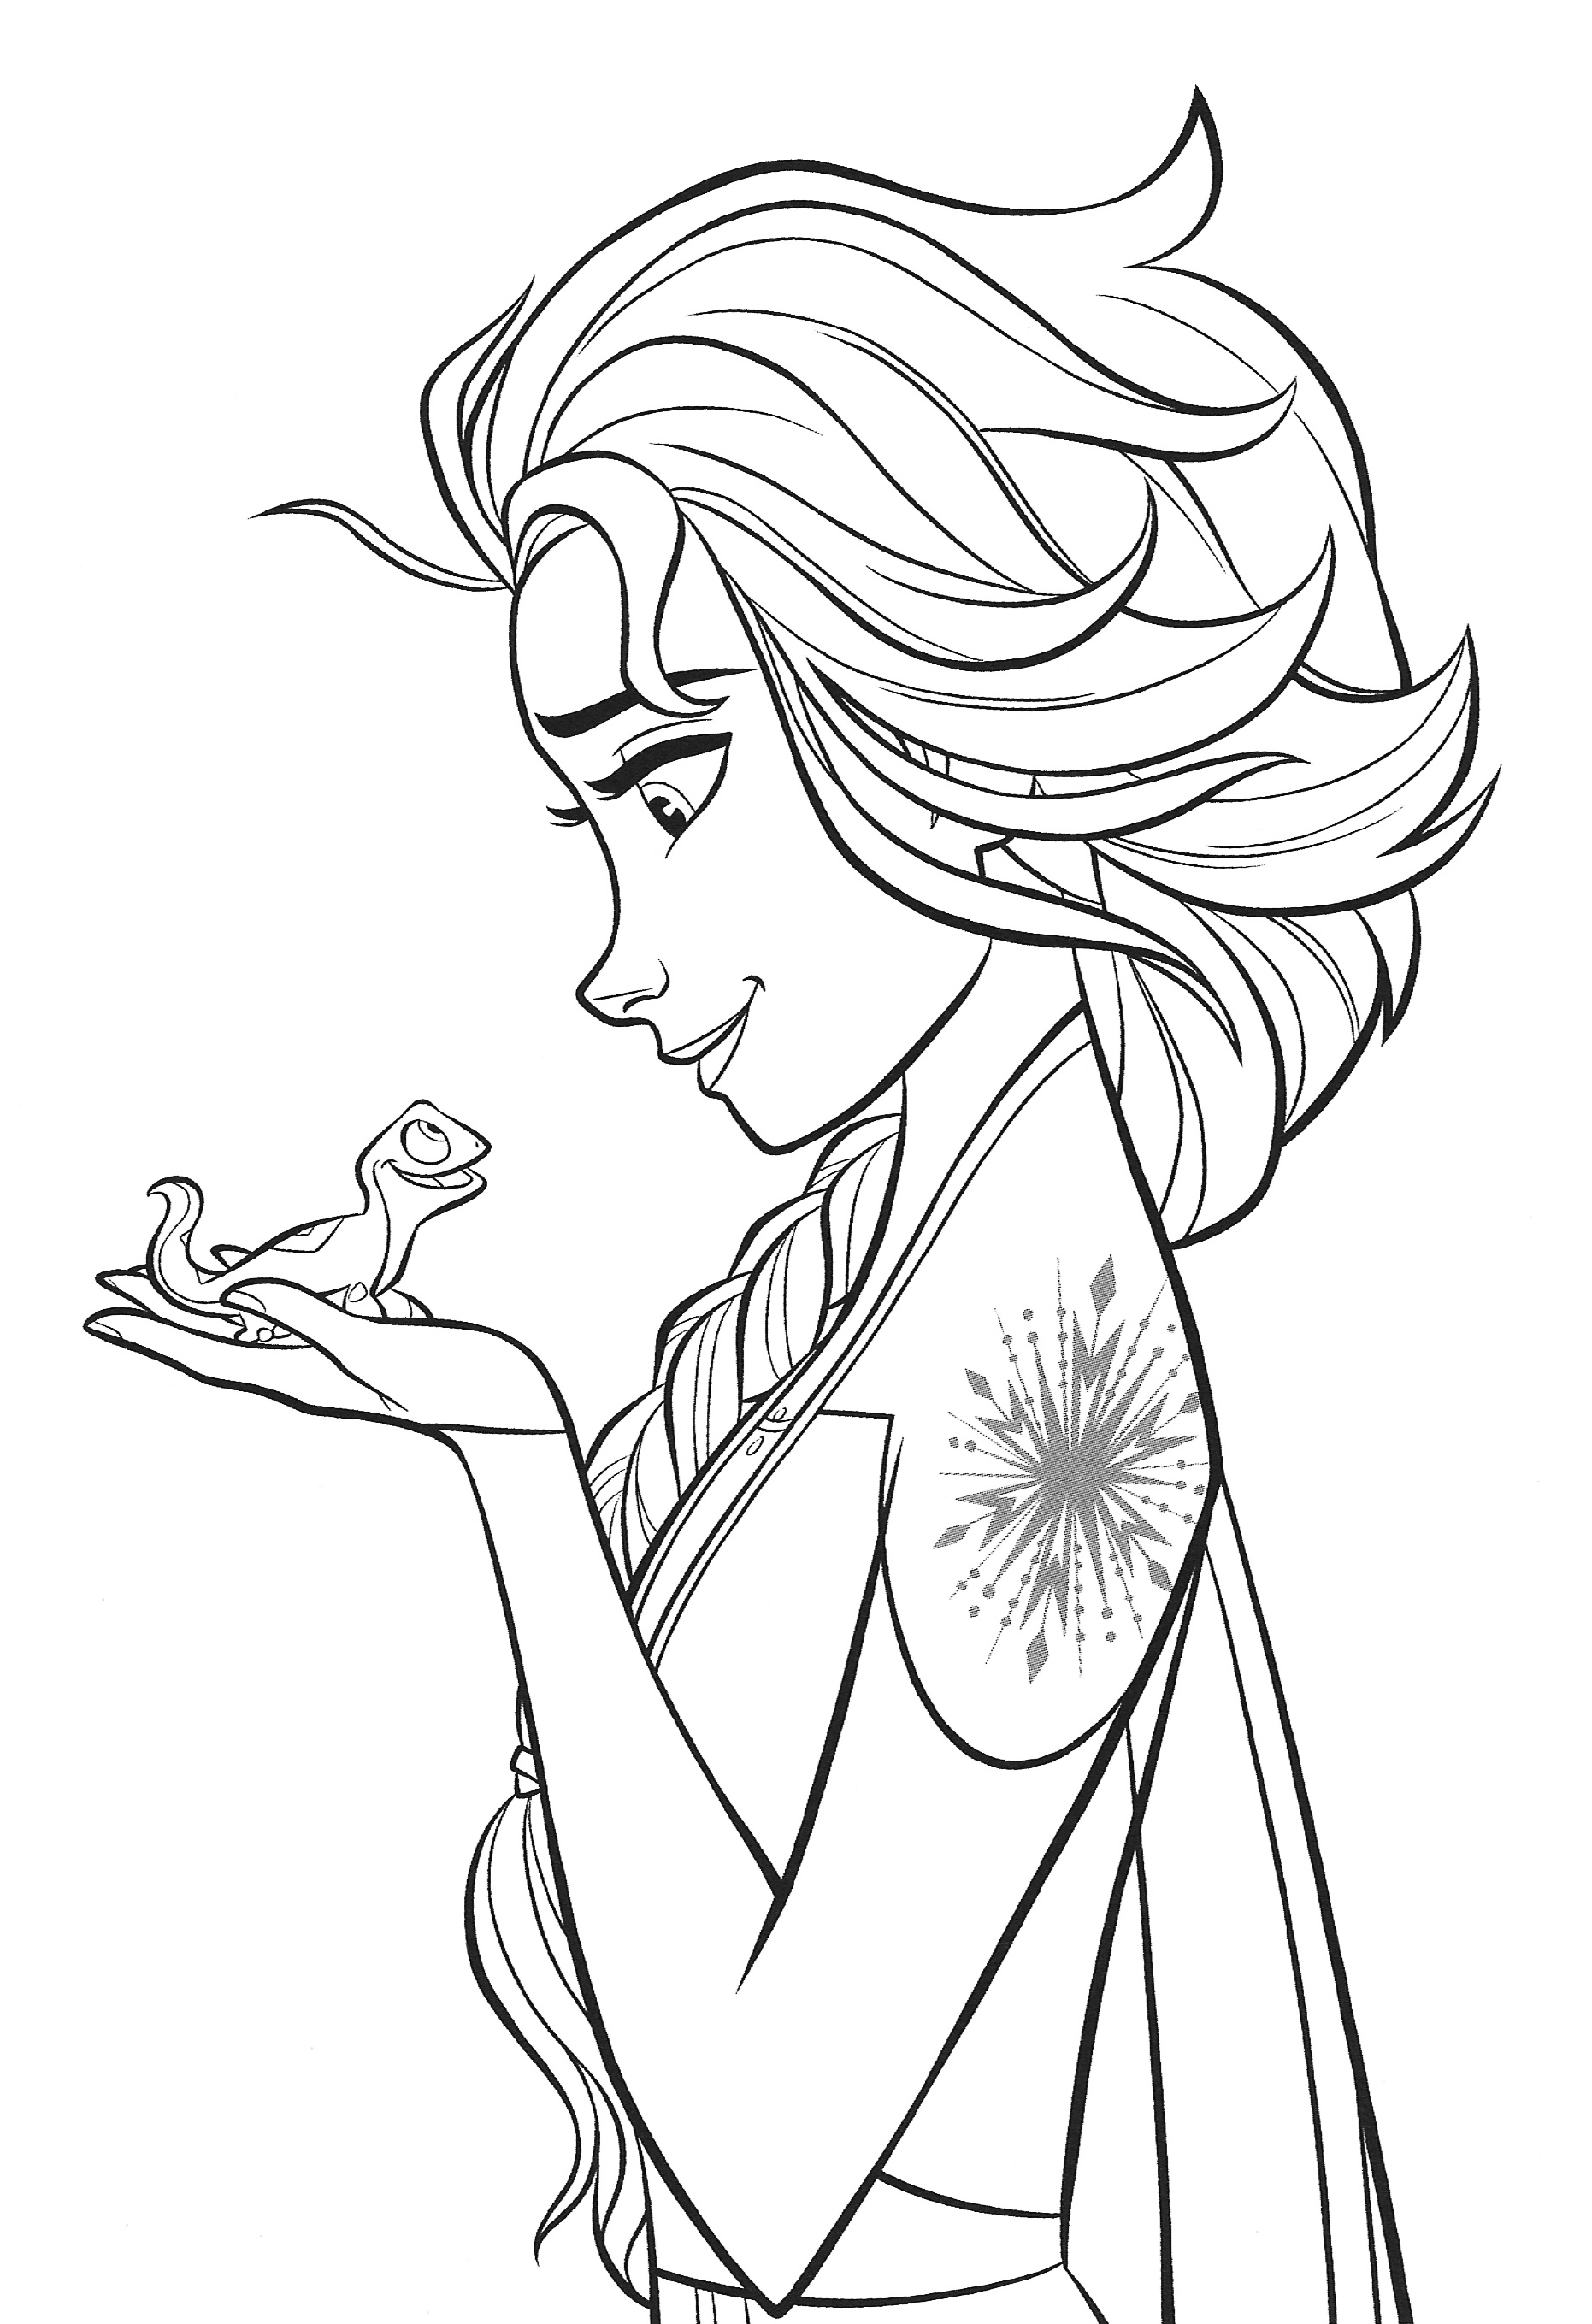 free printable frozen coloring pages frozen 2 coloring pages into the unknown colouring mermaid coloring printable pages free frozen